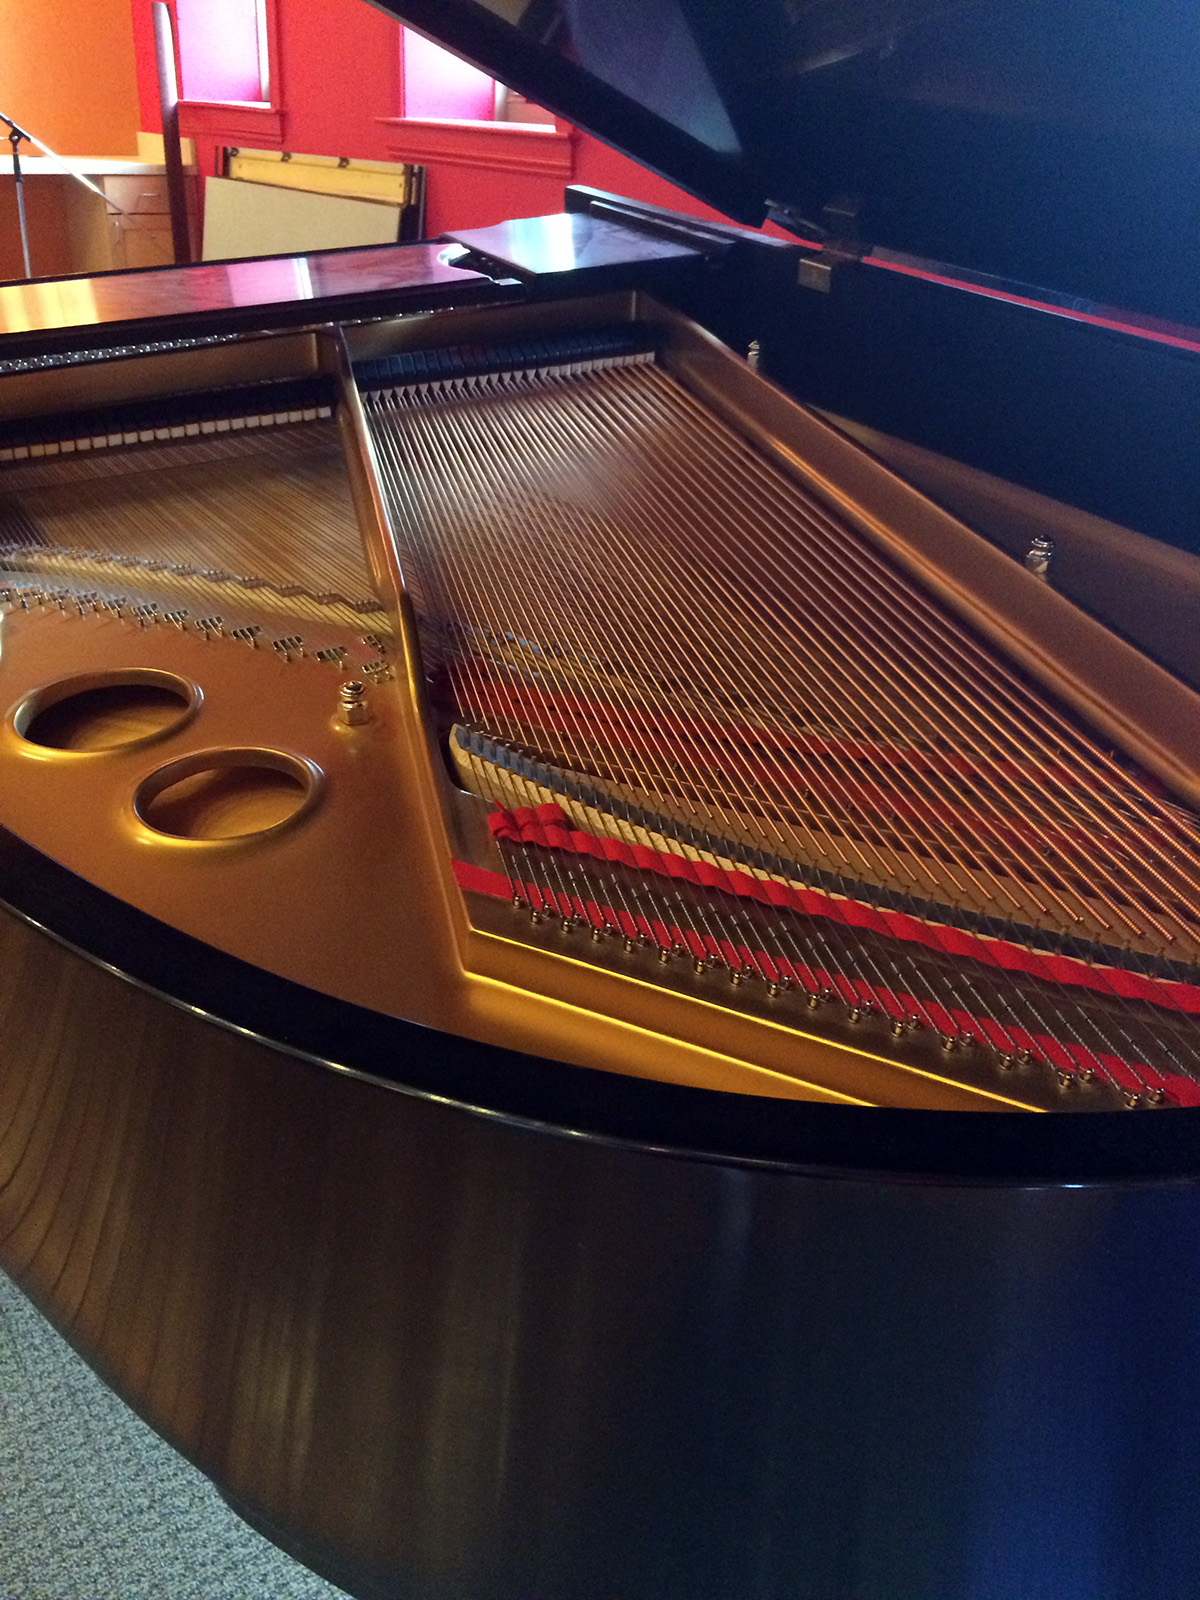 Inside look at Steinway O small grand piano